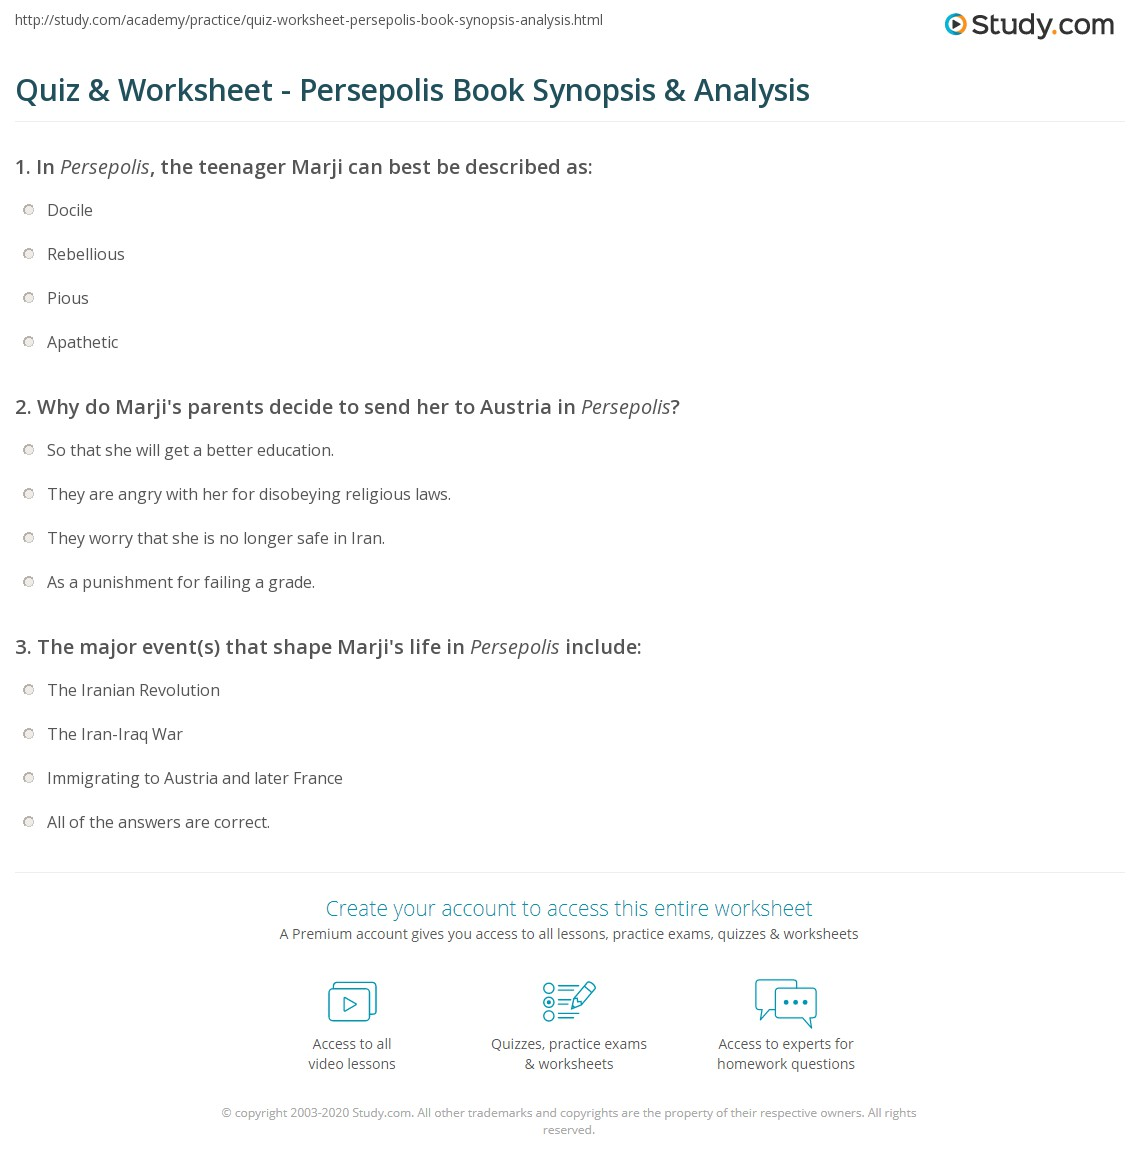 Quiz Worksheet Persepolis Book Synopsis Analysis Study Com